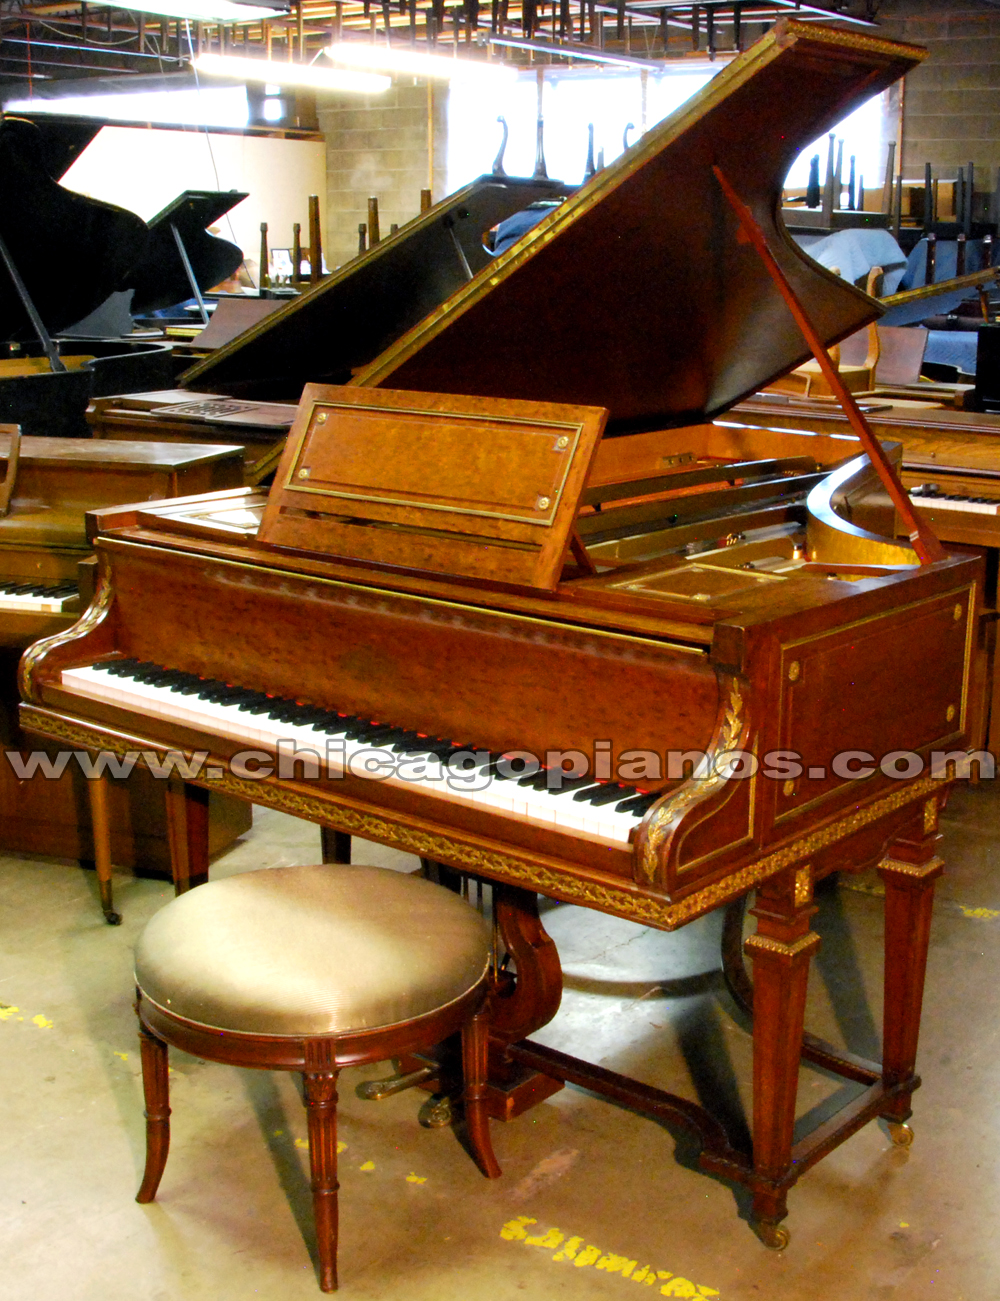 Used Erard Grand Piano from Chicago Pianos . com